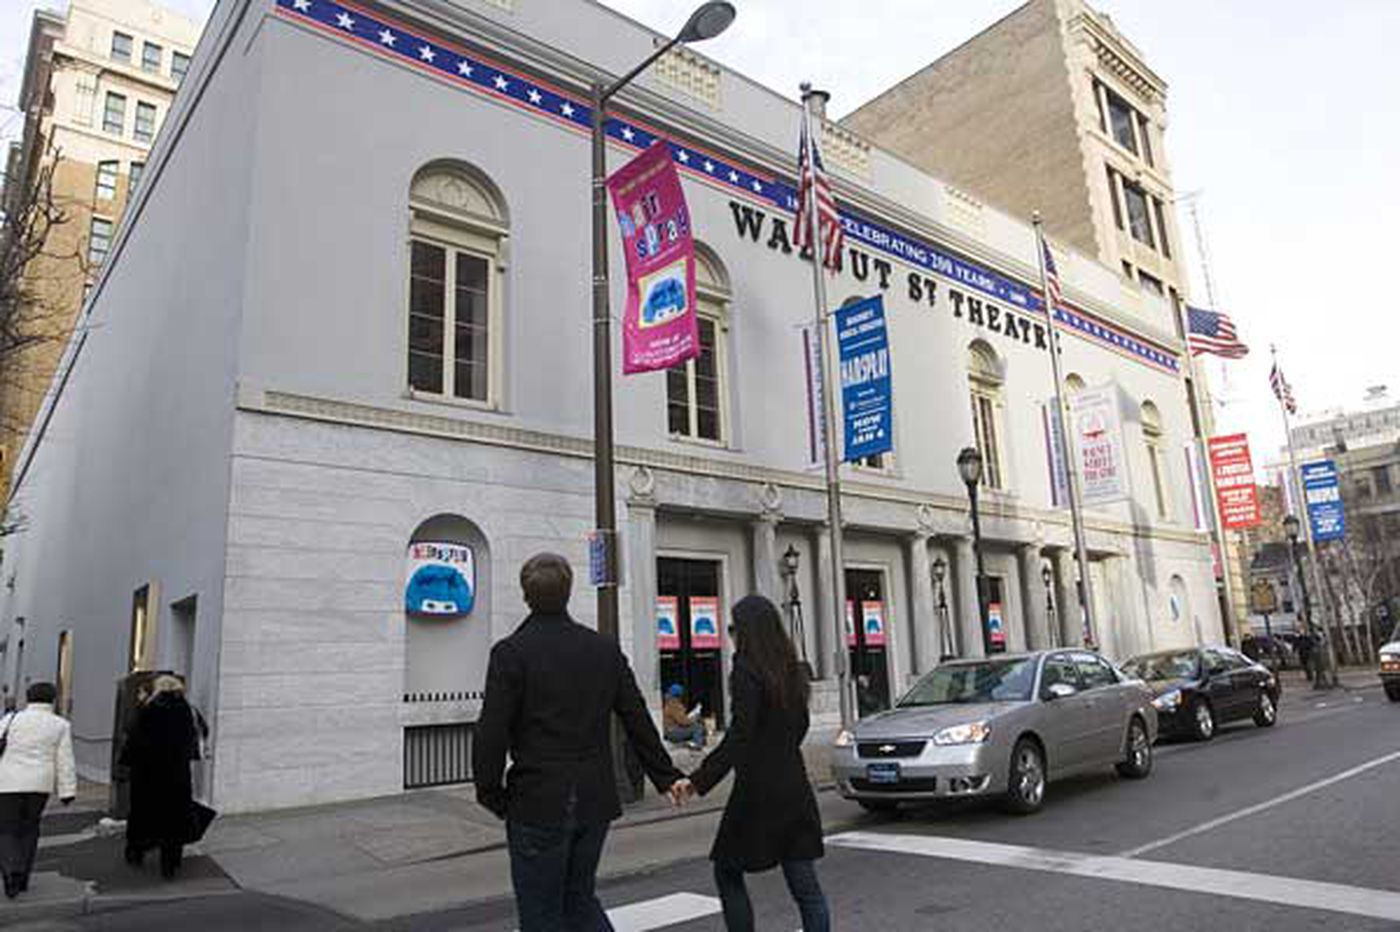 Walnut Street Theatre will do 'Young Frankenstein,' 'Shrek,' and 'The Bodyguard'